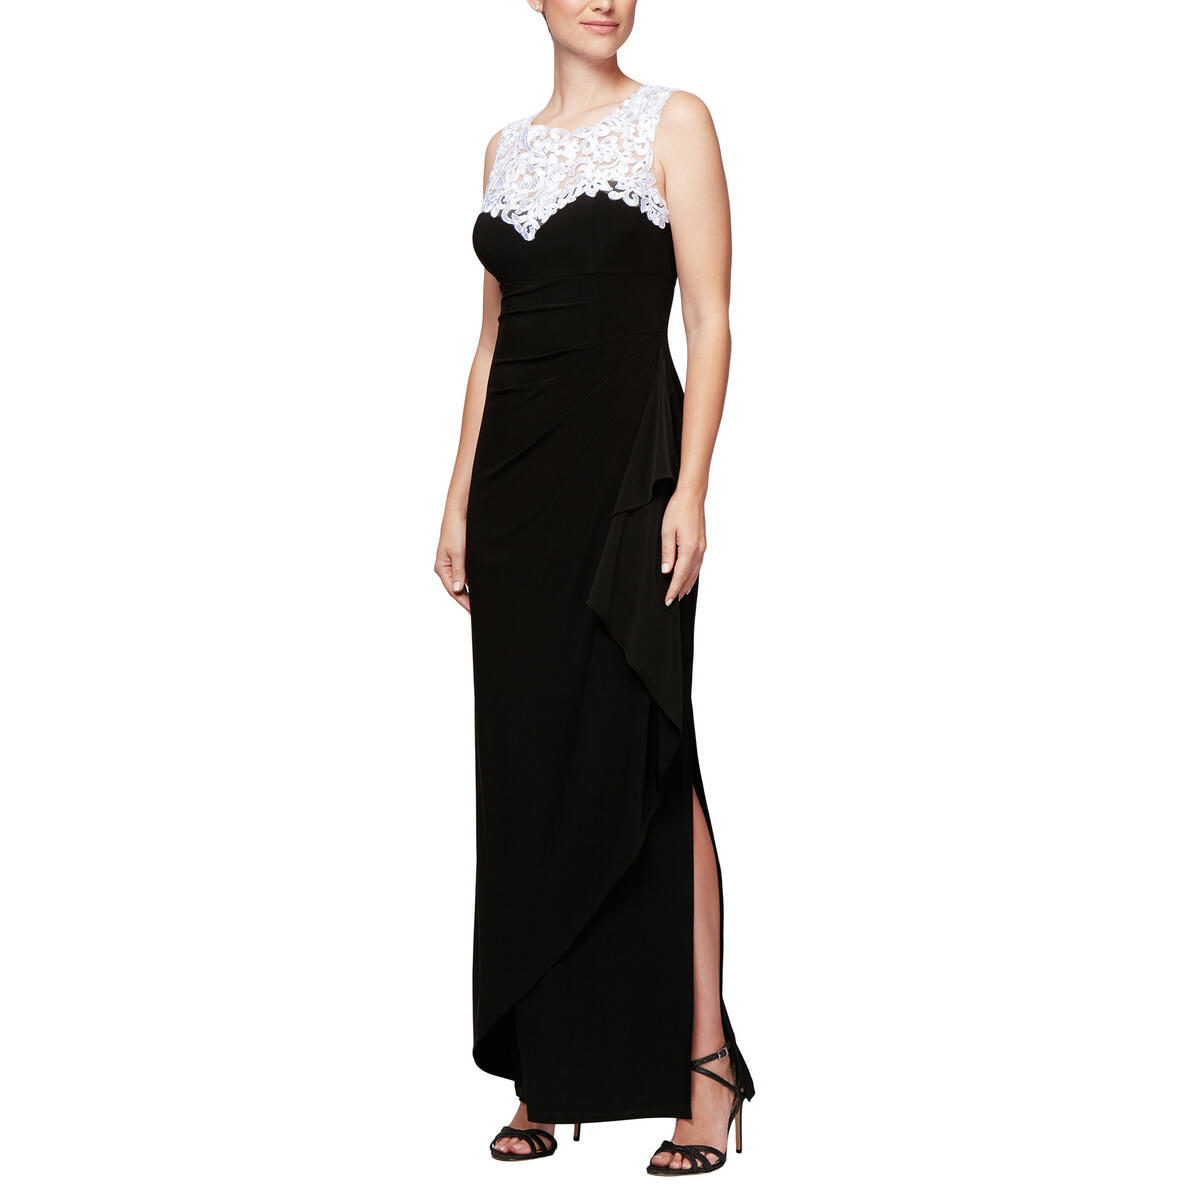 ALEX APPAREL GROUP INC - Jersey & Lace Wrap Waist Gown